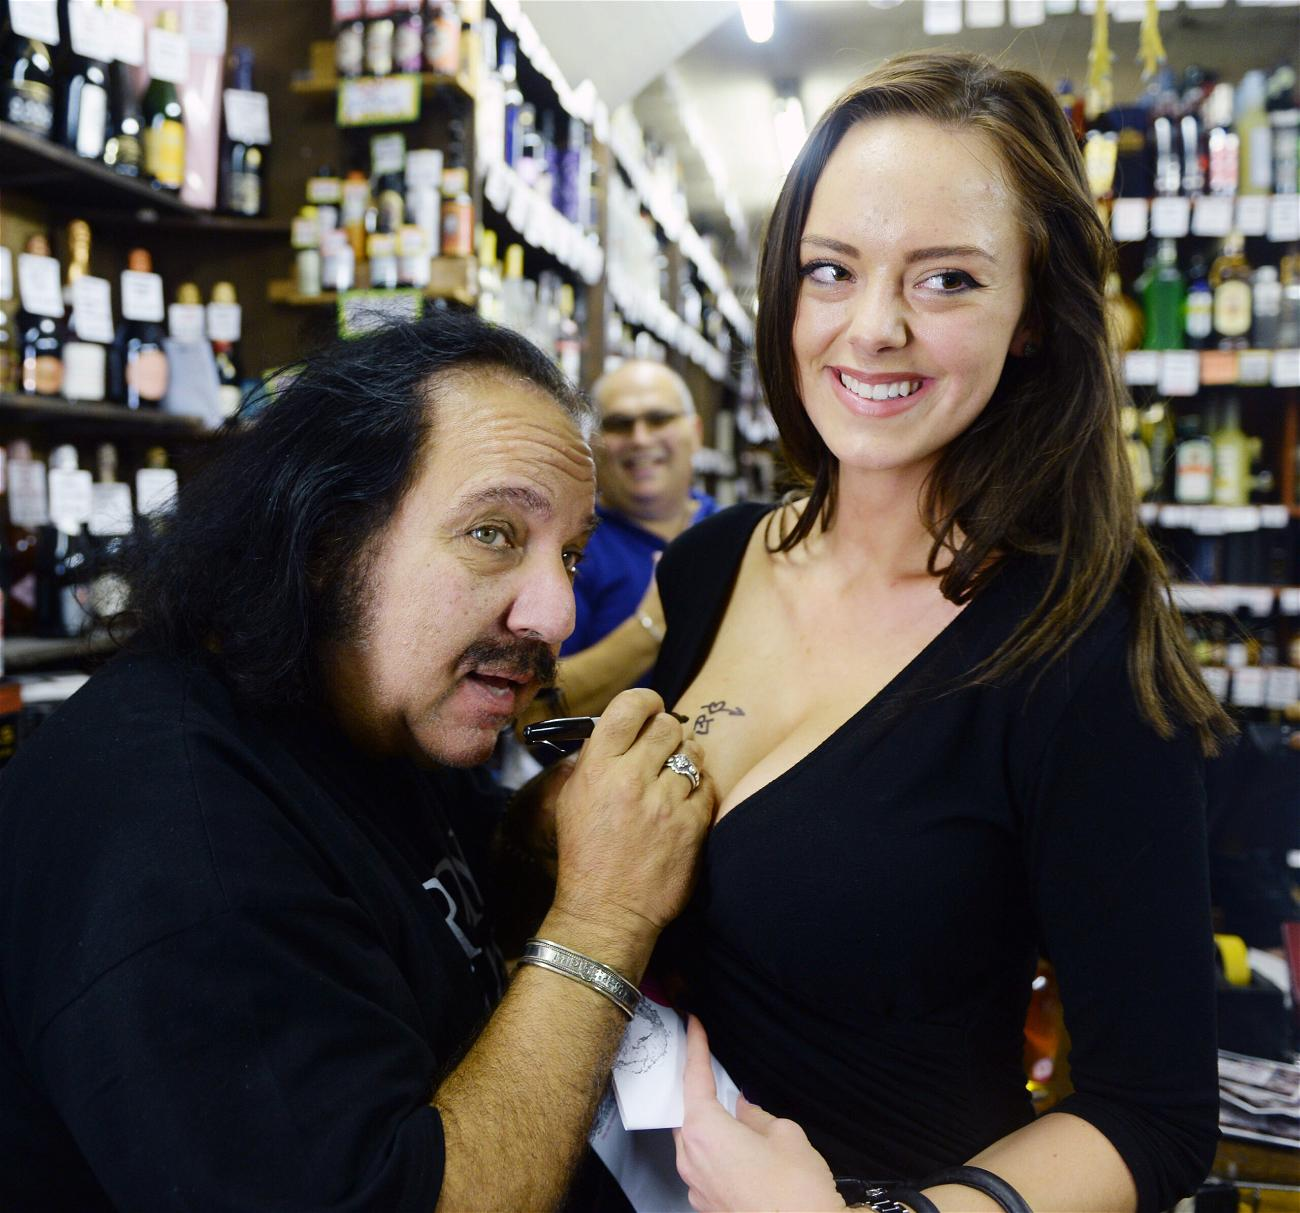 Ron Jeremy Indicted On 30 Charges Of Sexual Assault, Involving 21 Victims